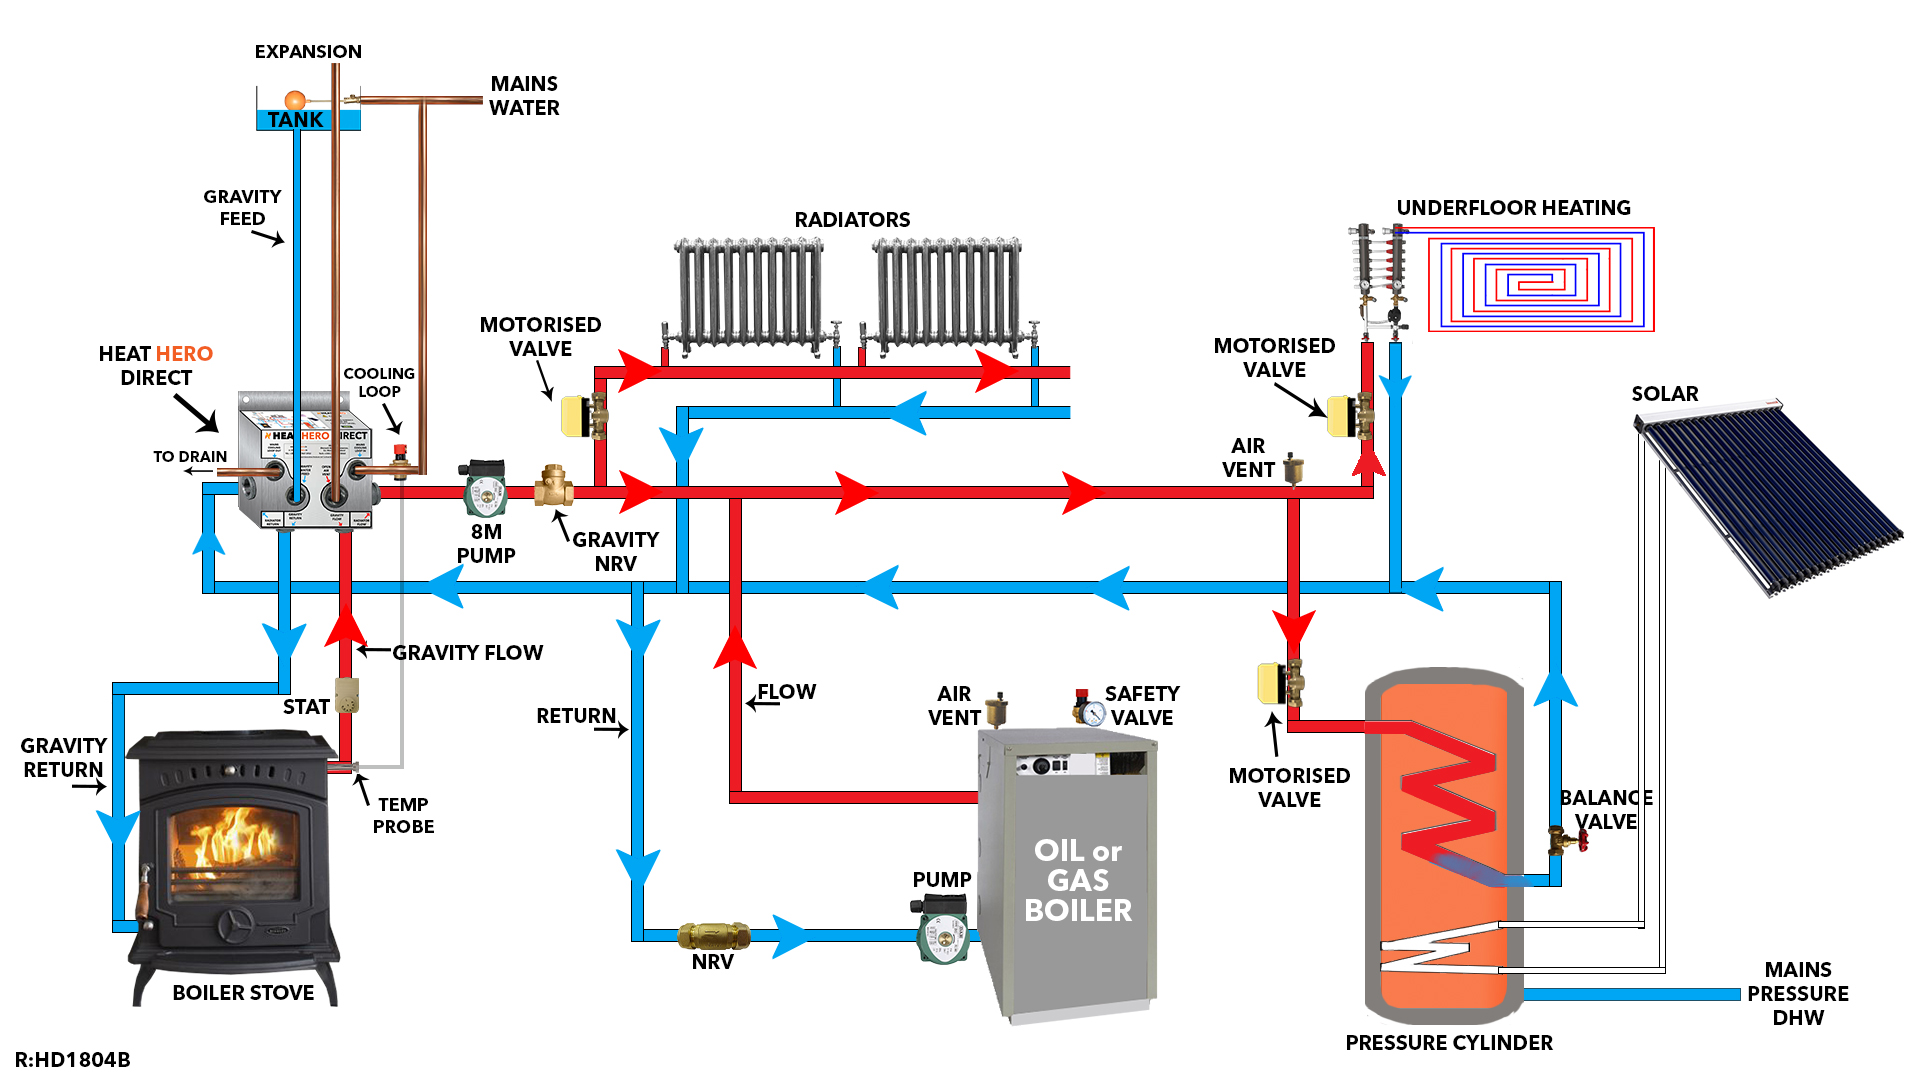 Heat Hero Direct Technical - heathero.ie Oil Heat Exchanger Boiler Wiring Diagram on